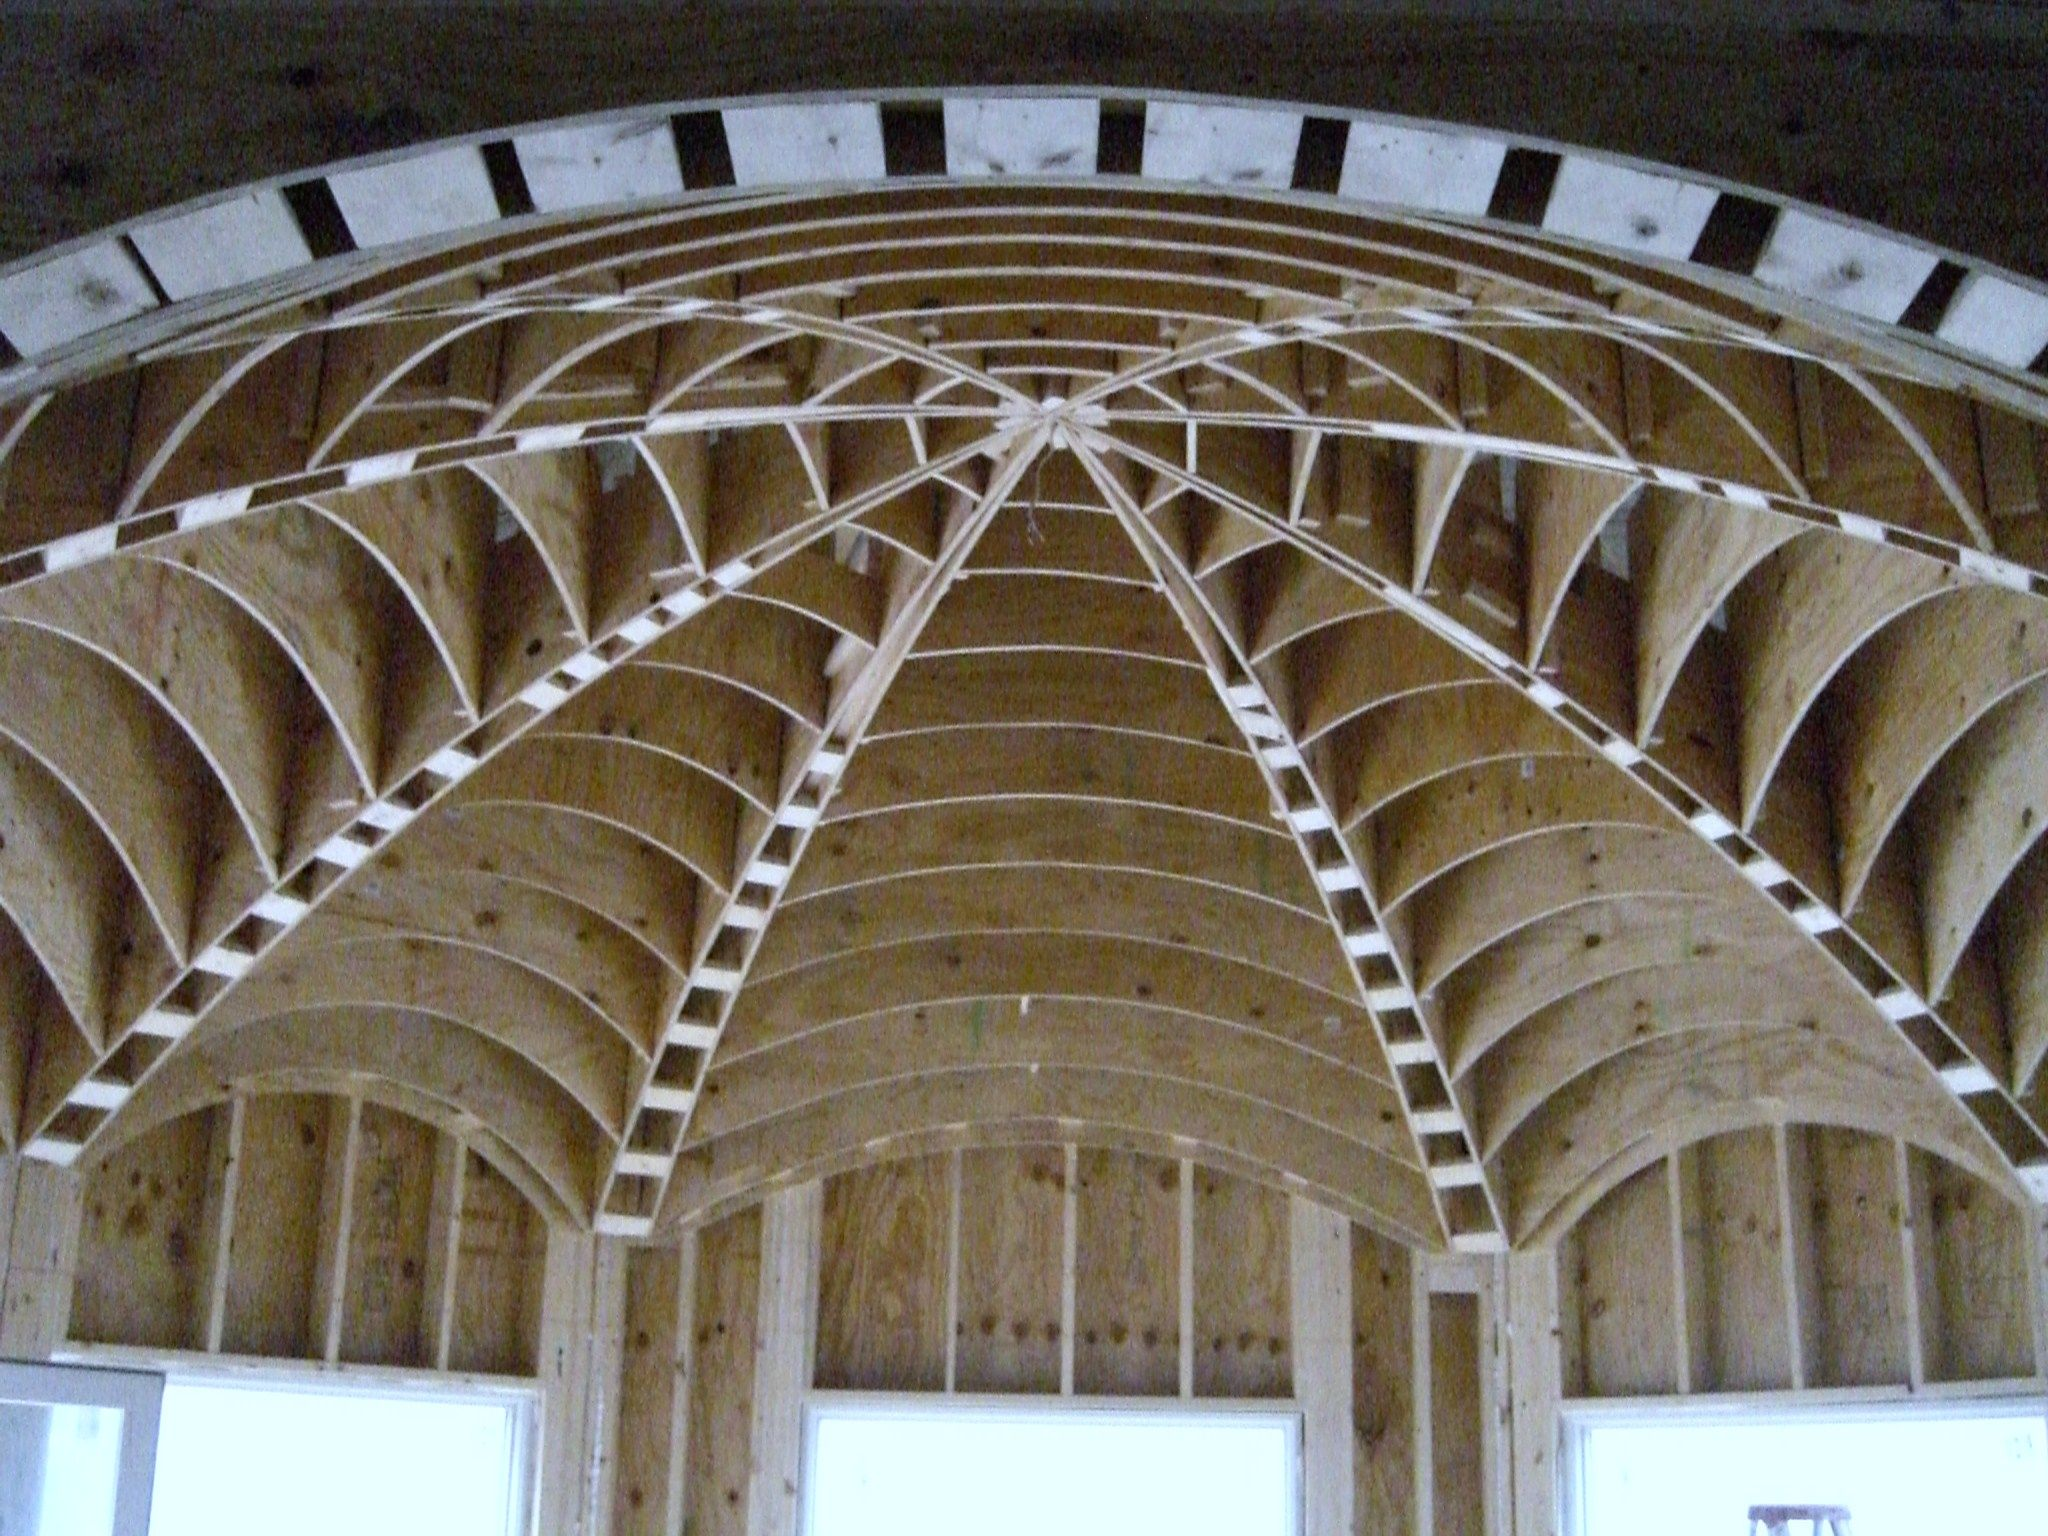 Roman barrel vault images galleries for Barrel vault roof